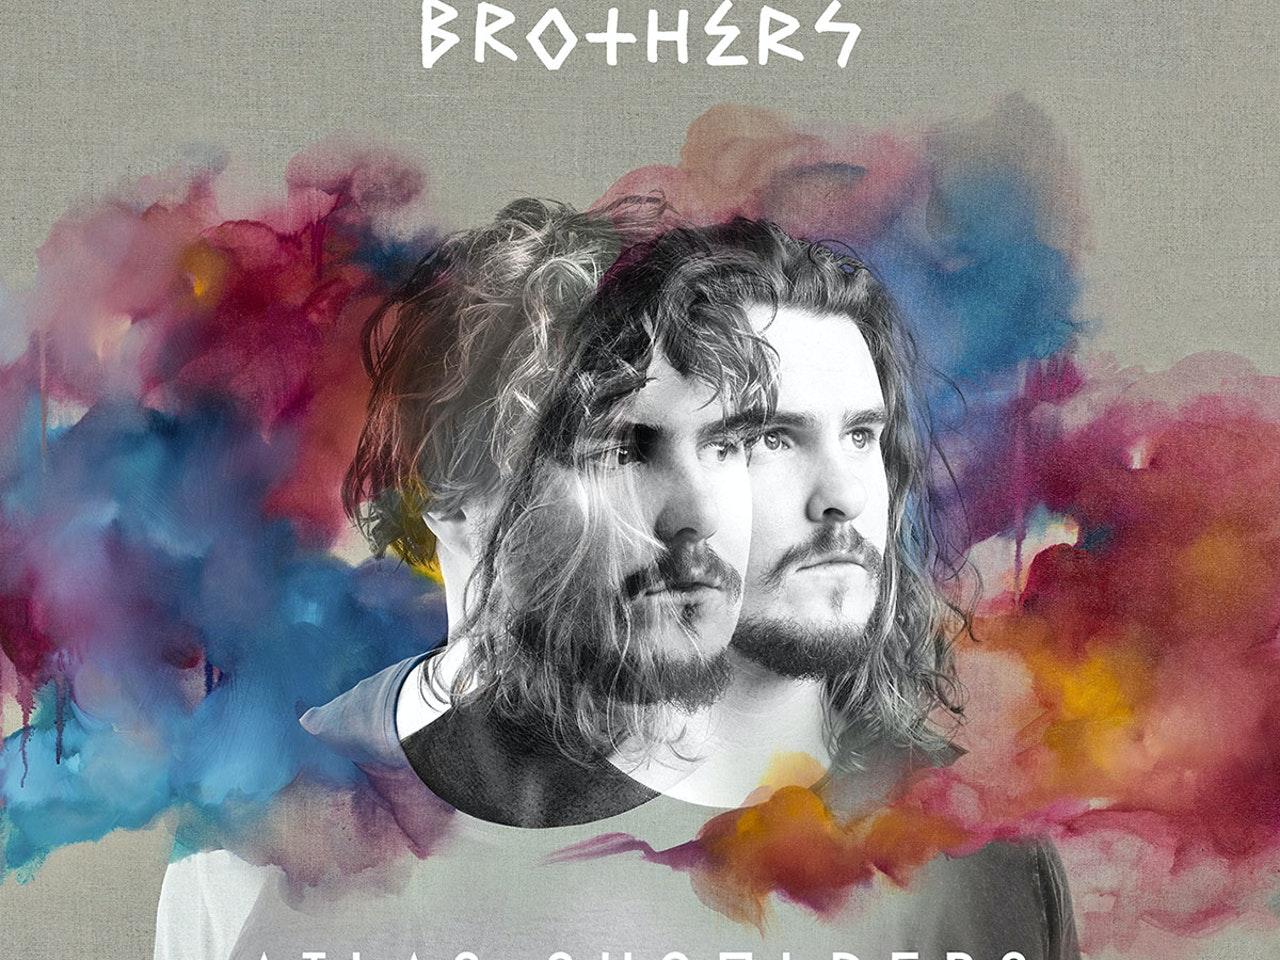 Pierce_Brothers_Album_art